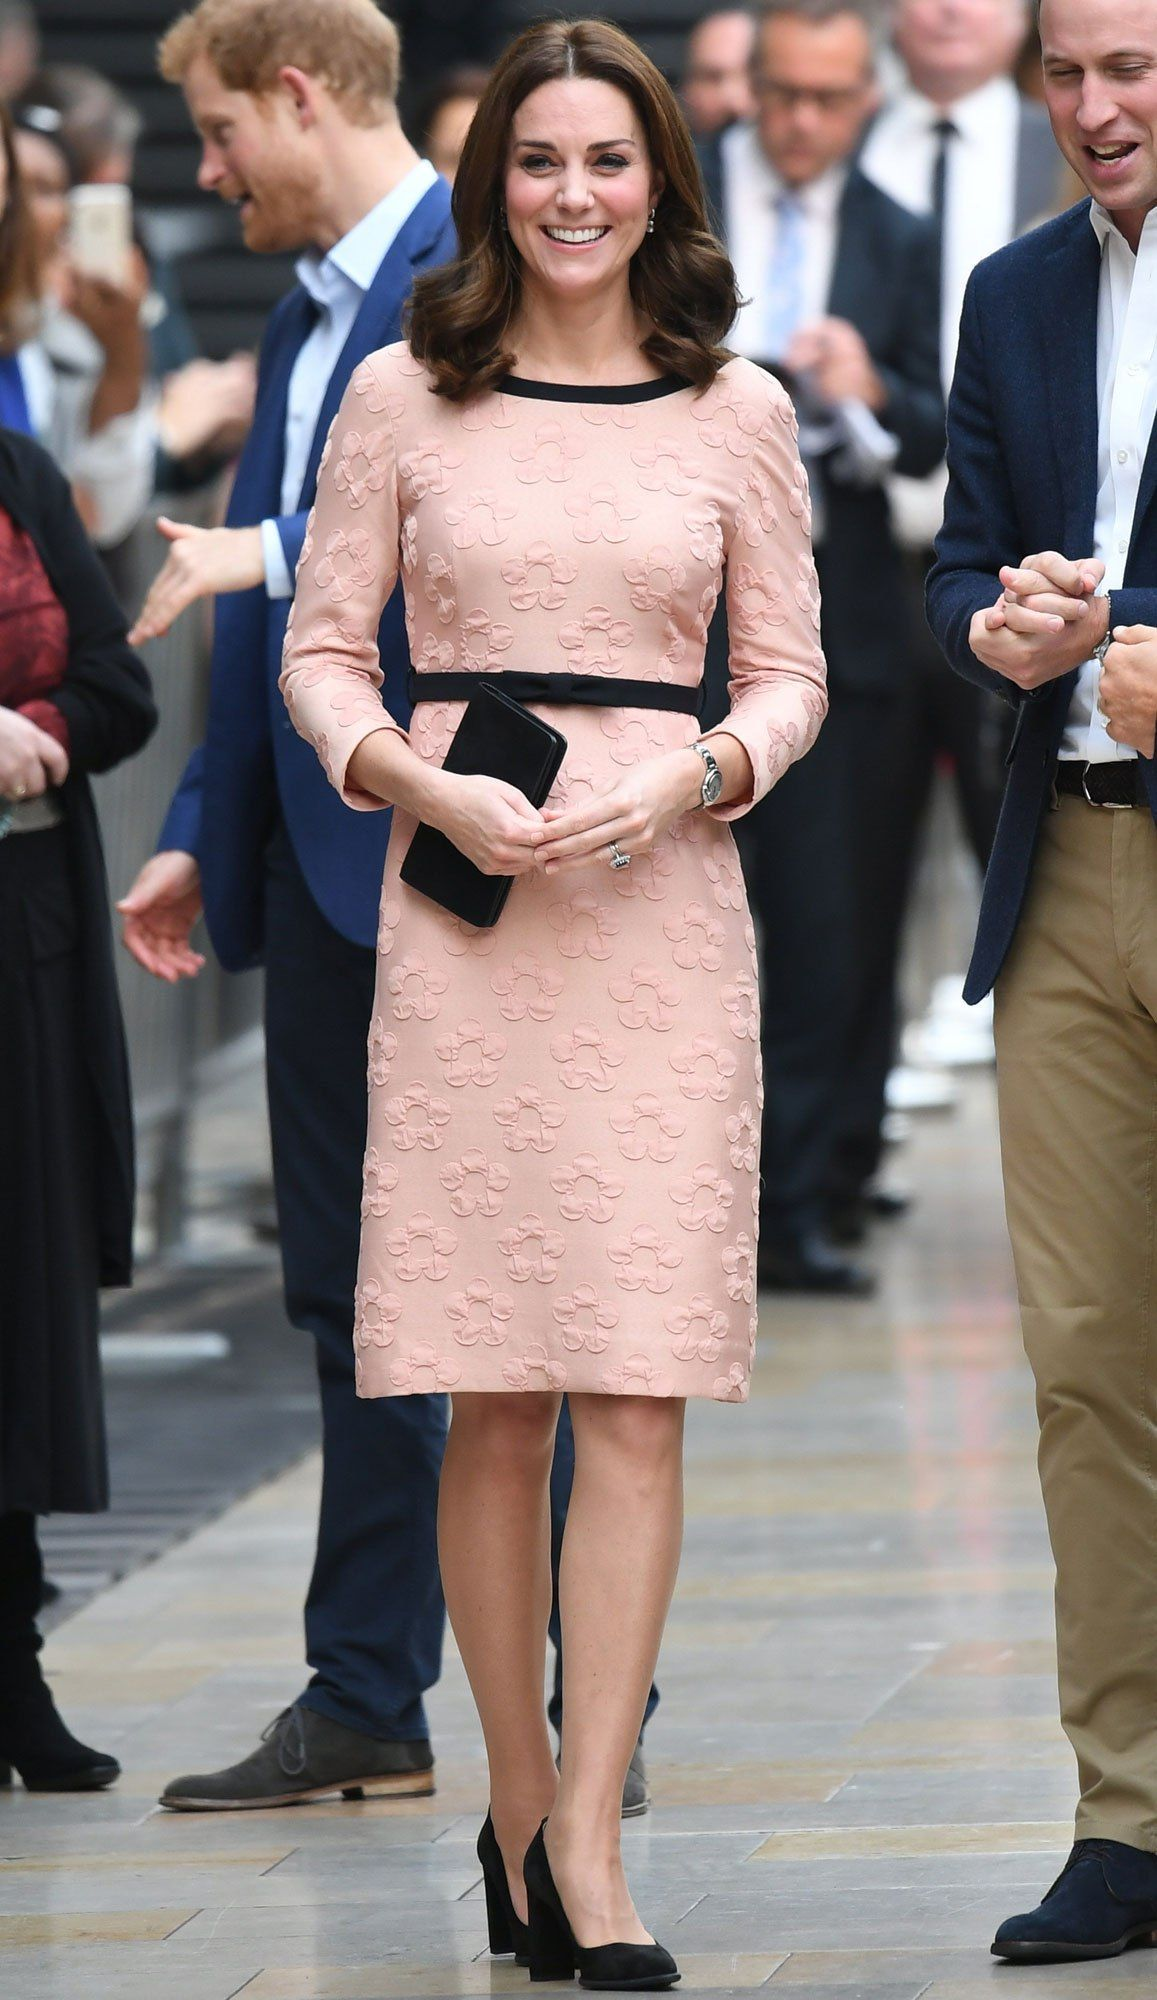 Watch Pregnant Princess Kate Dance with Paddington Bear — While Still Battling Morning Sickness -  Kate Middleton Makes Surprise Appearance at London's Paddington Station  - #AngelinaJolie #ankletattoo #Battling #Bear #BeautifulCelebrities #cooltattoo #Dance #dogtattoo #feathertattoo #Kate #KateMiddleton #Morning #Paddington #Pregnant #Princess #Sickness #watch